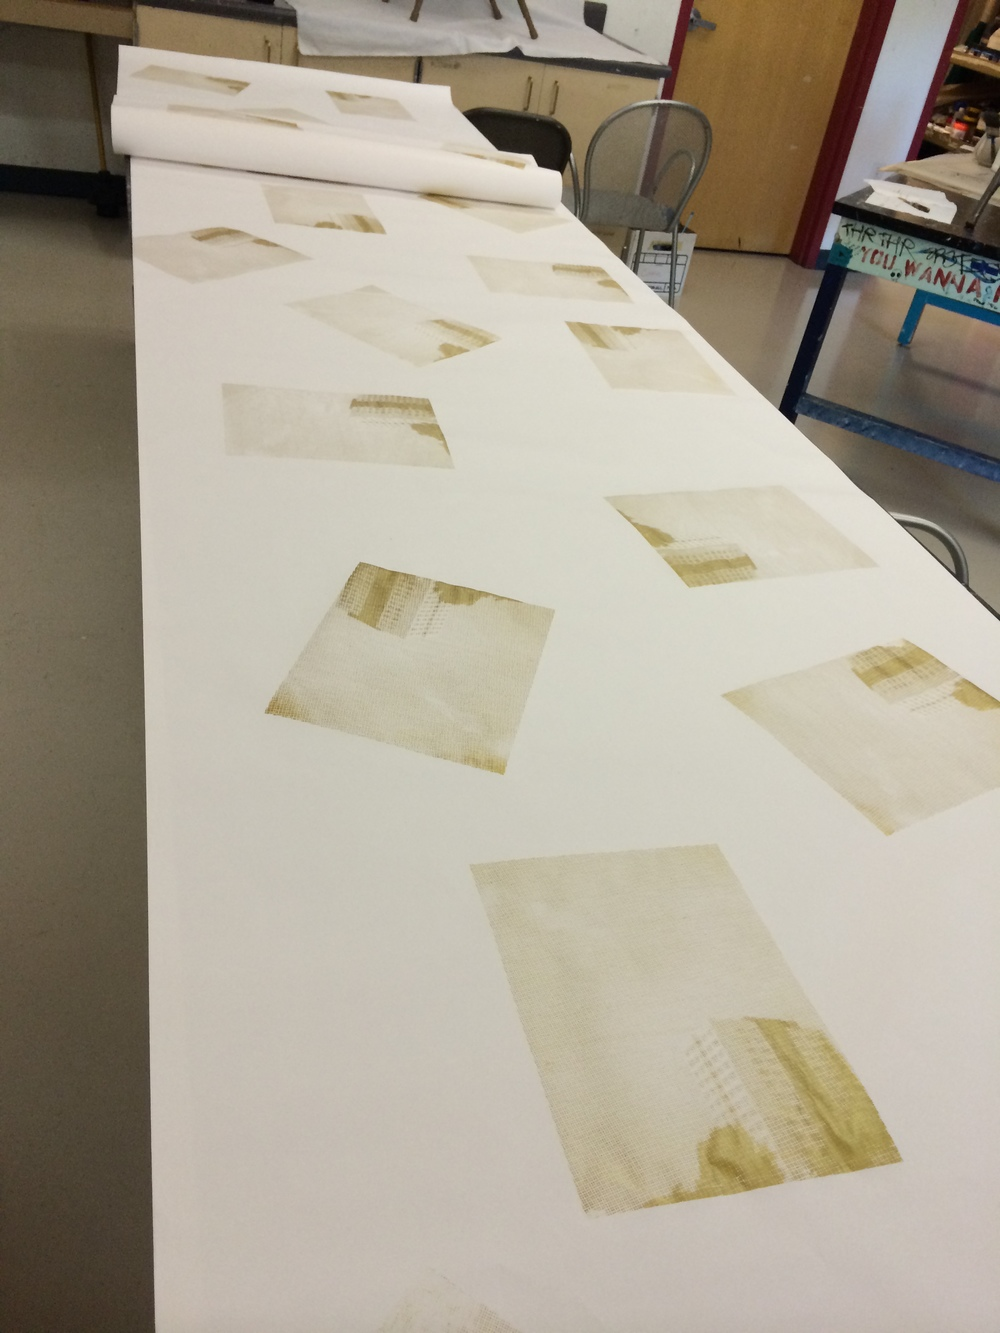 9/29 Screen printing wrapping paper in my classroom, afterhours (kickstarter rewards!)